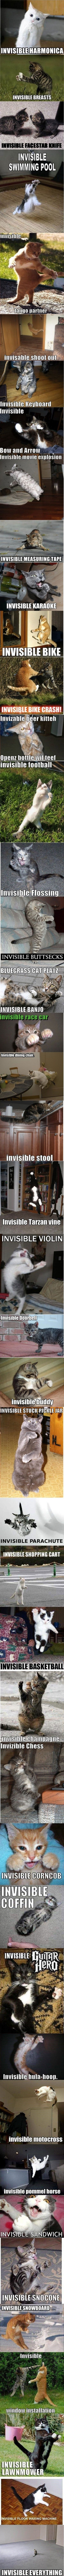 Funny pets, cat humour. For the funniest cats and kittens images as well as quotes visit www.funnyjoke.lol